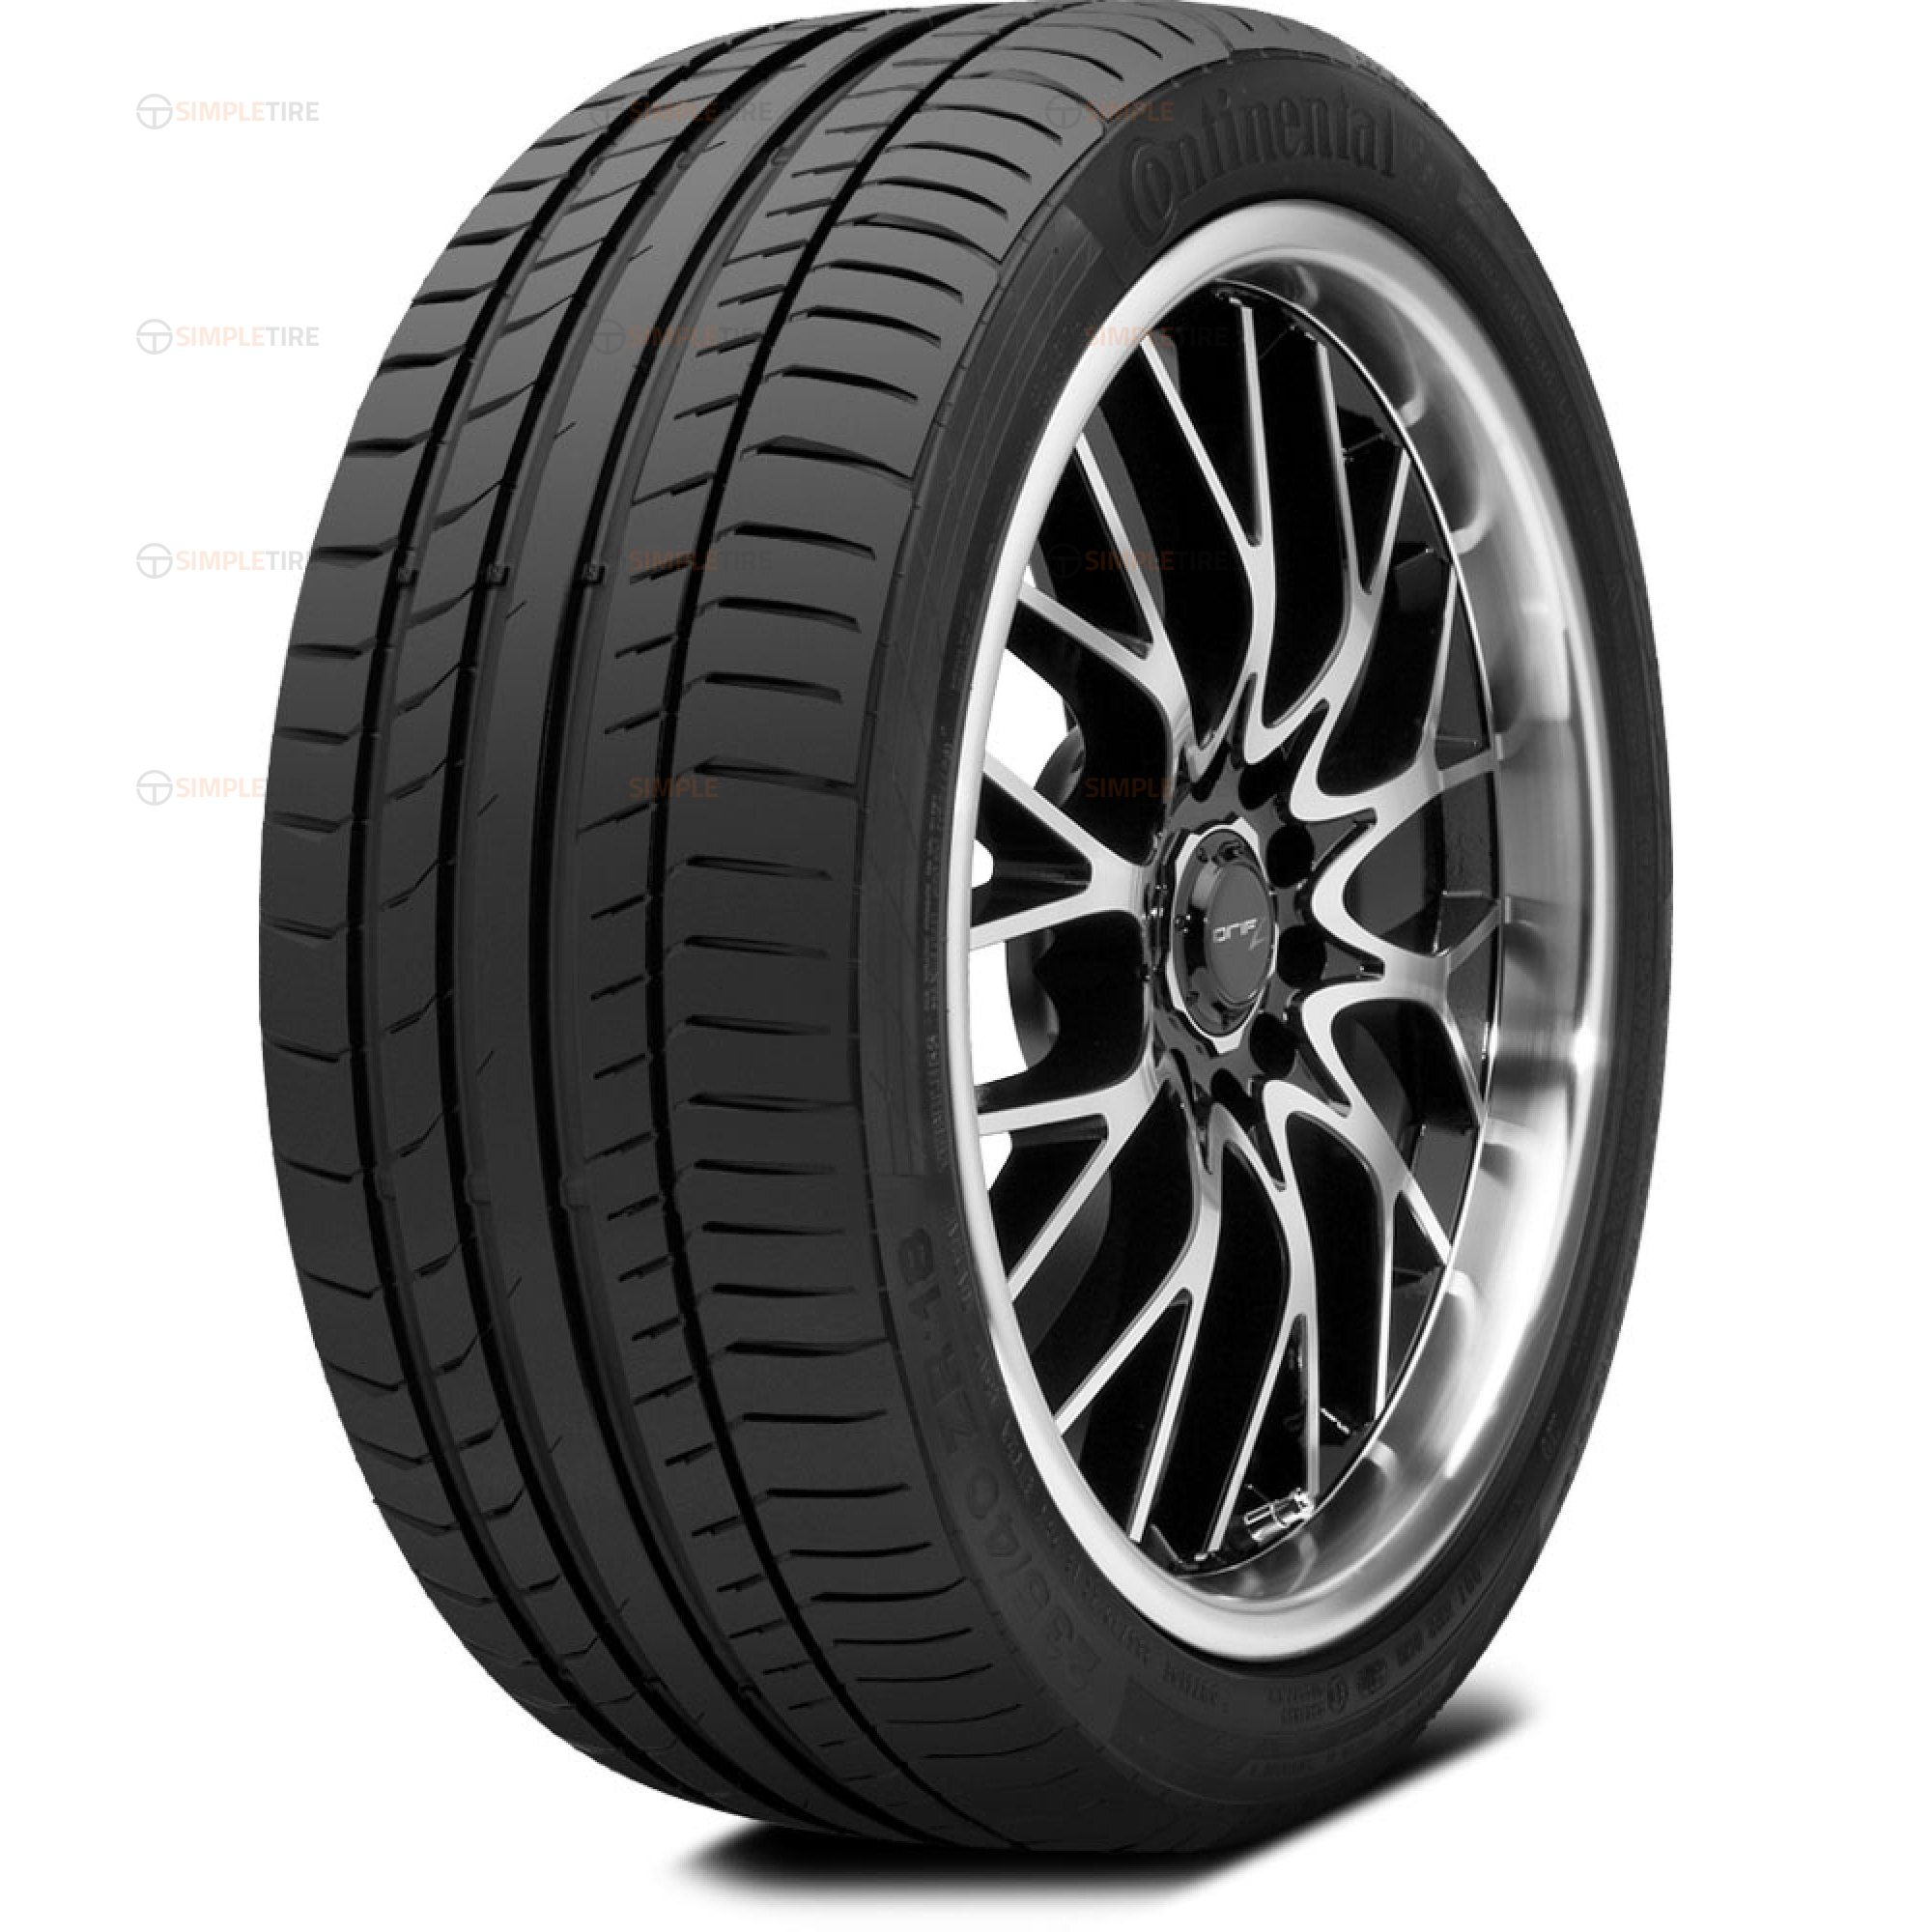 03508300000 P225/40R19 ContiSportContact 5P SSR Continental